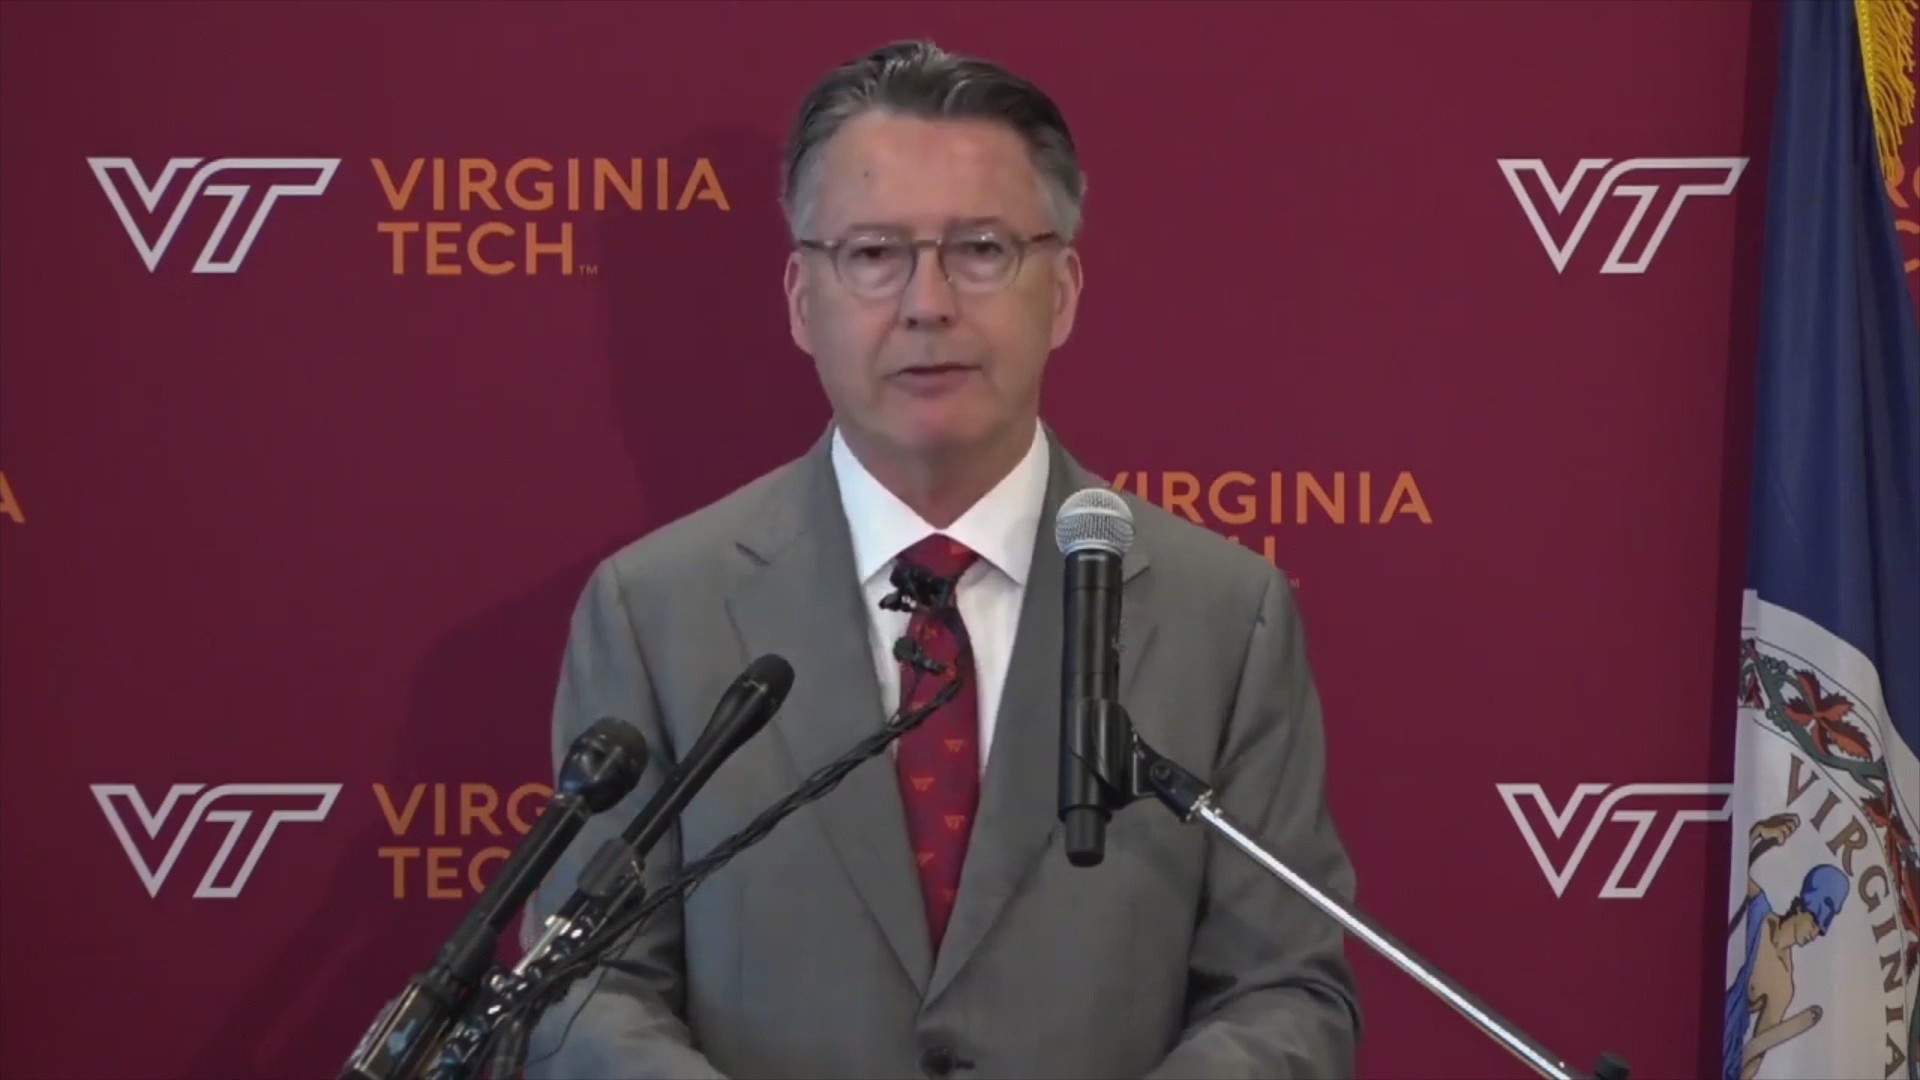 Virginia_Tech_announces_Innovation_campu_0_20190610231827